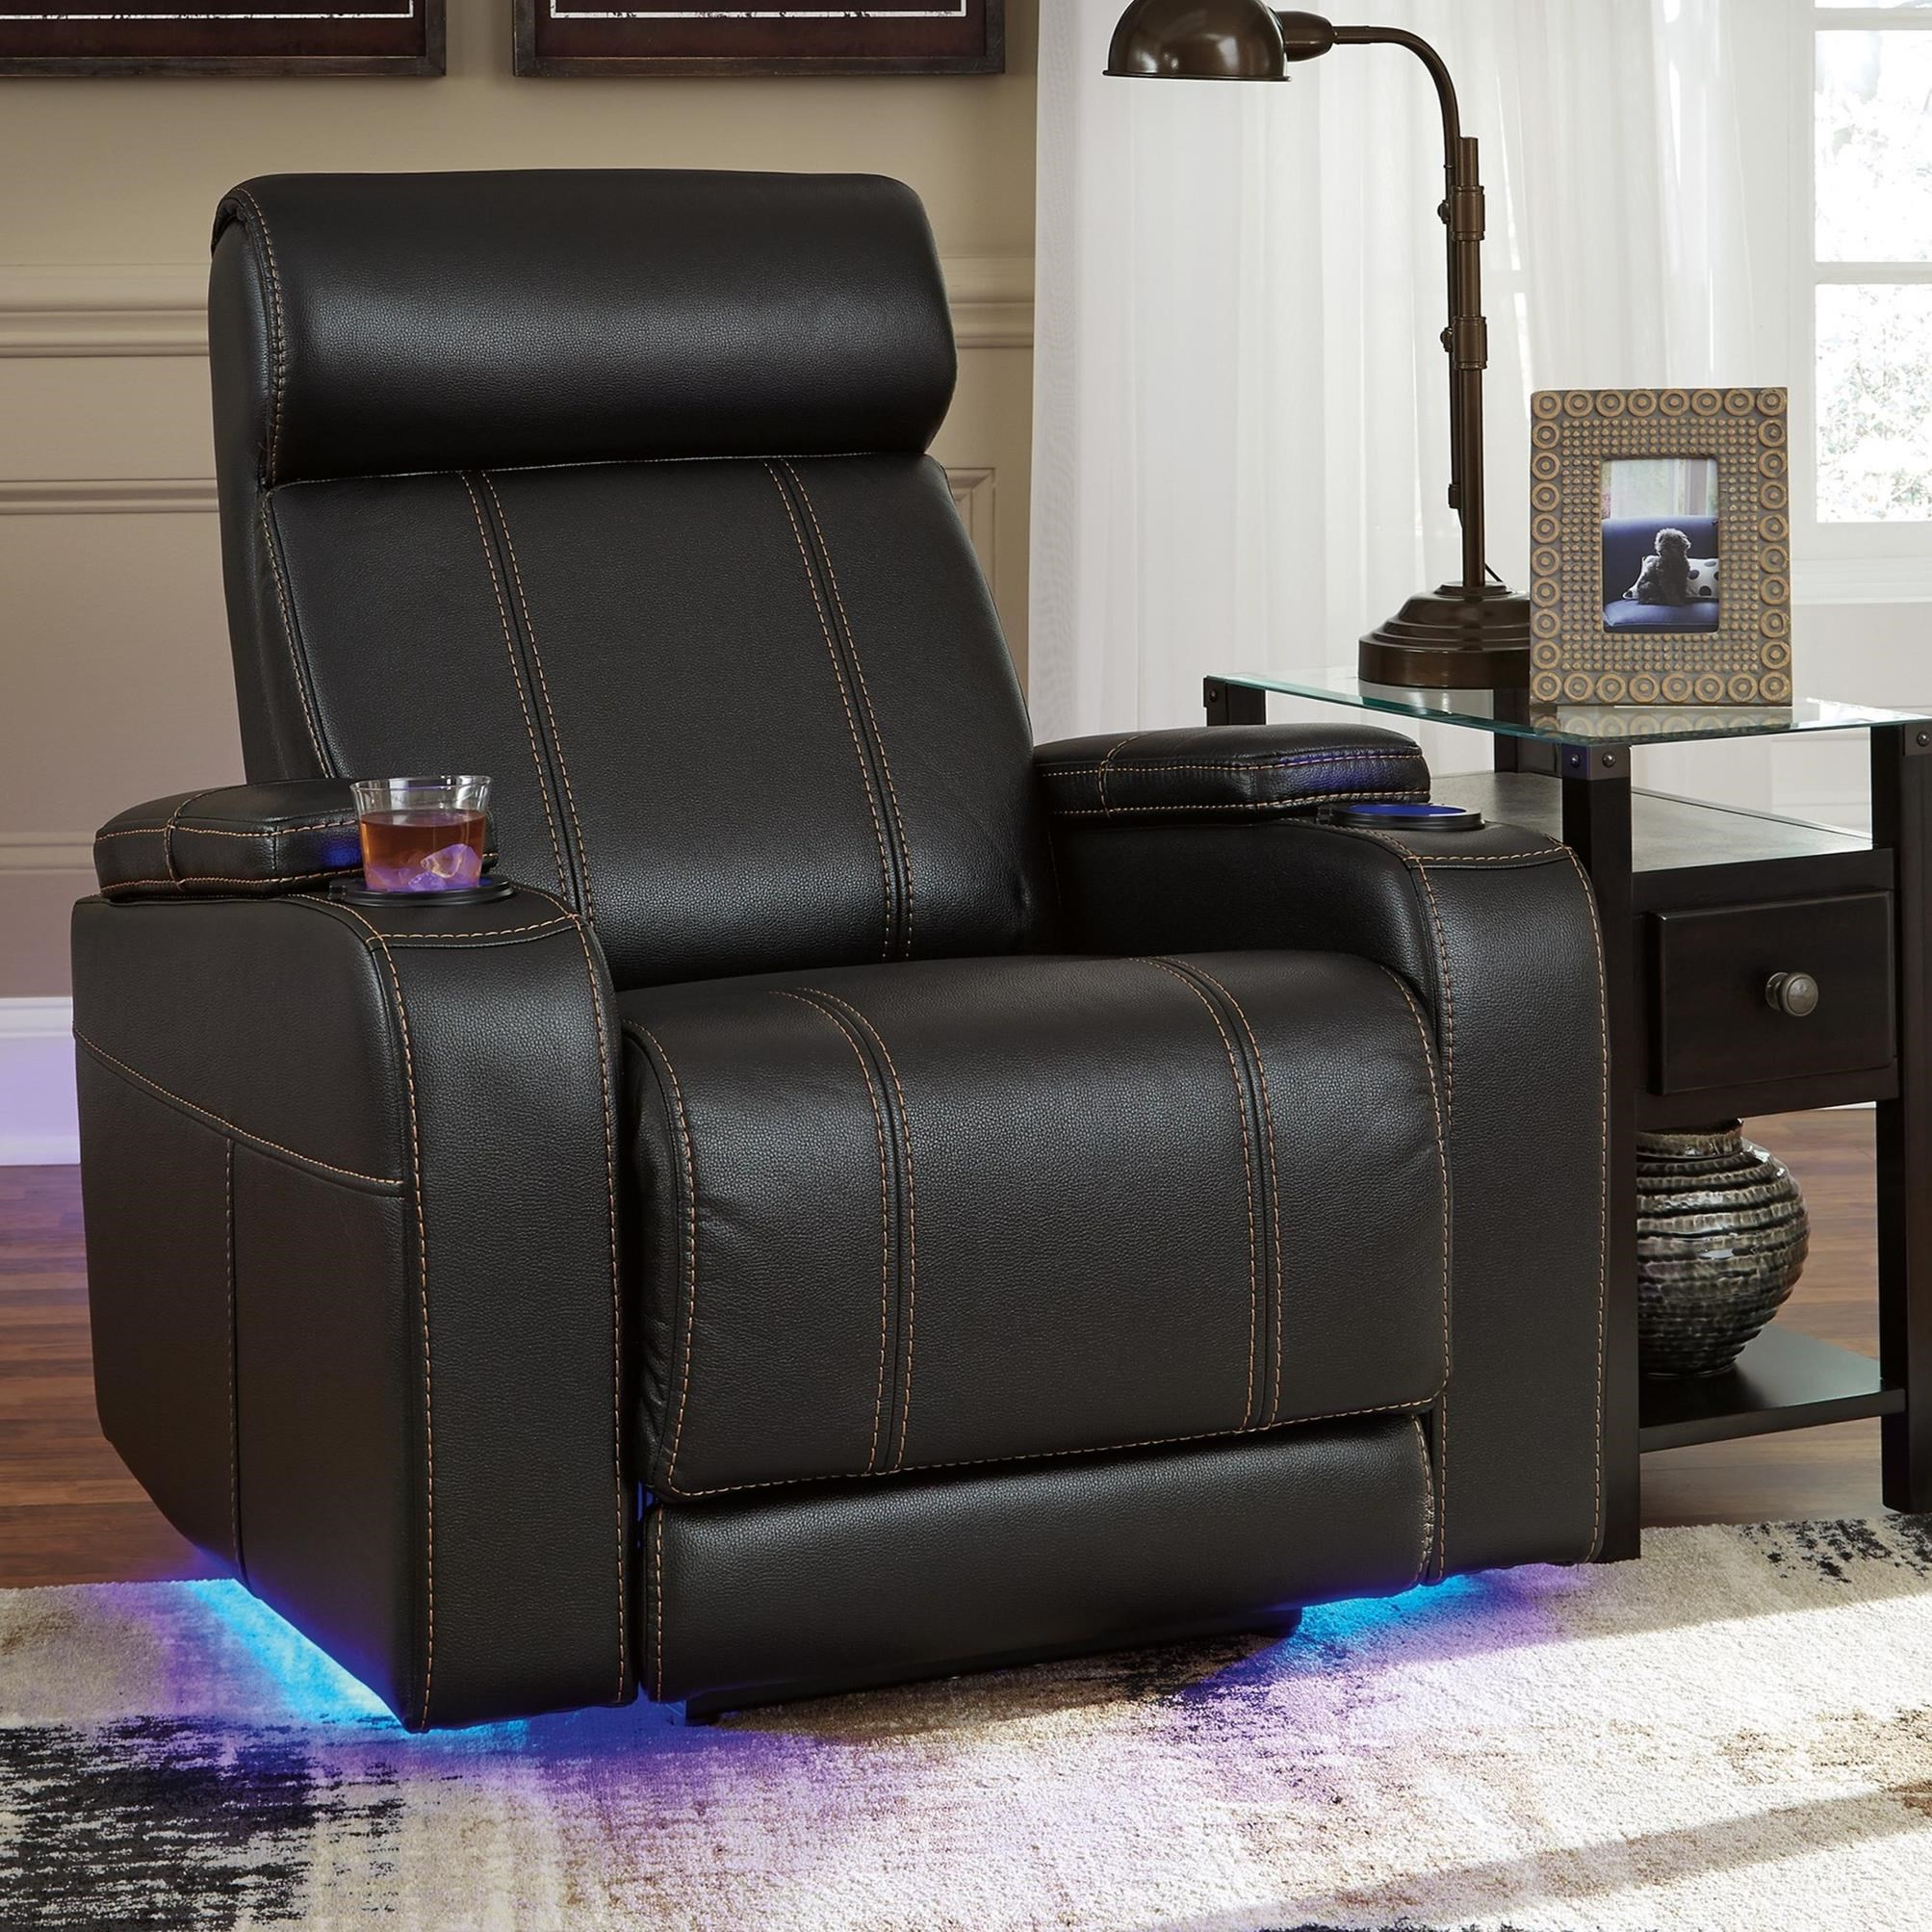 Faux Leather Power Recliner With Cup Holders Storage U0026 LED  Lighting Recliner Cup Holder And Storage P37